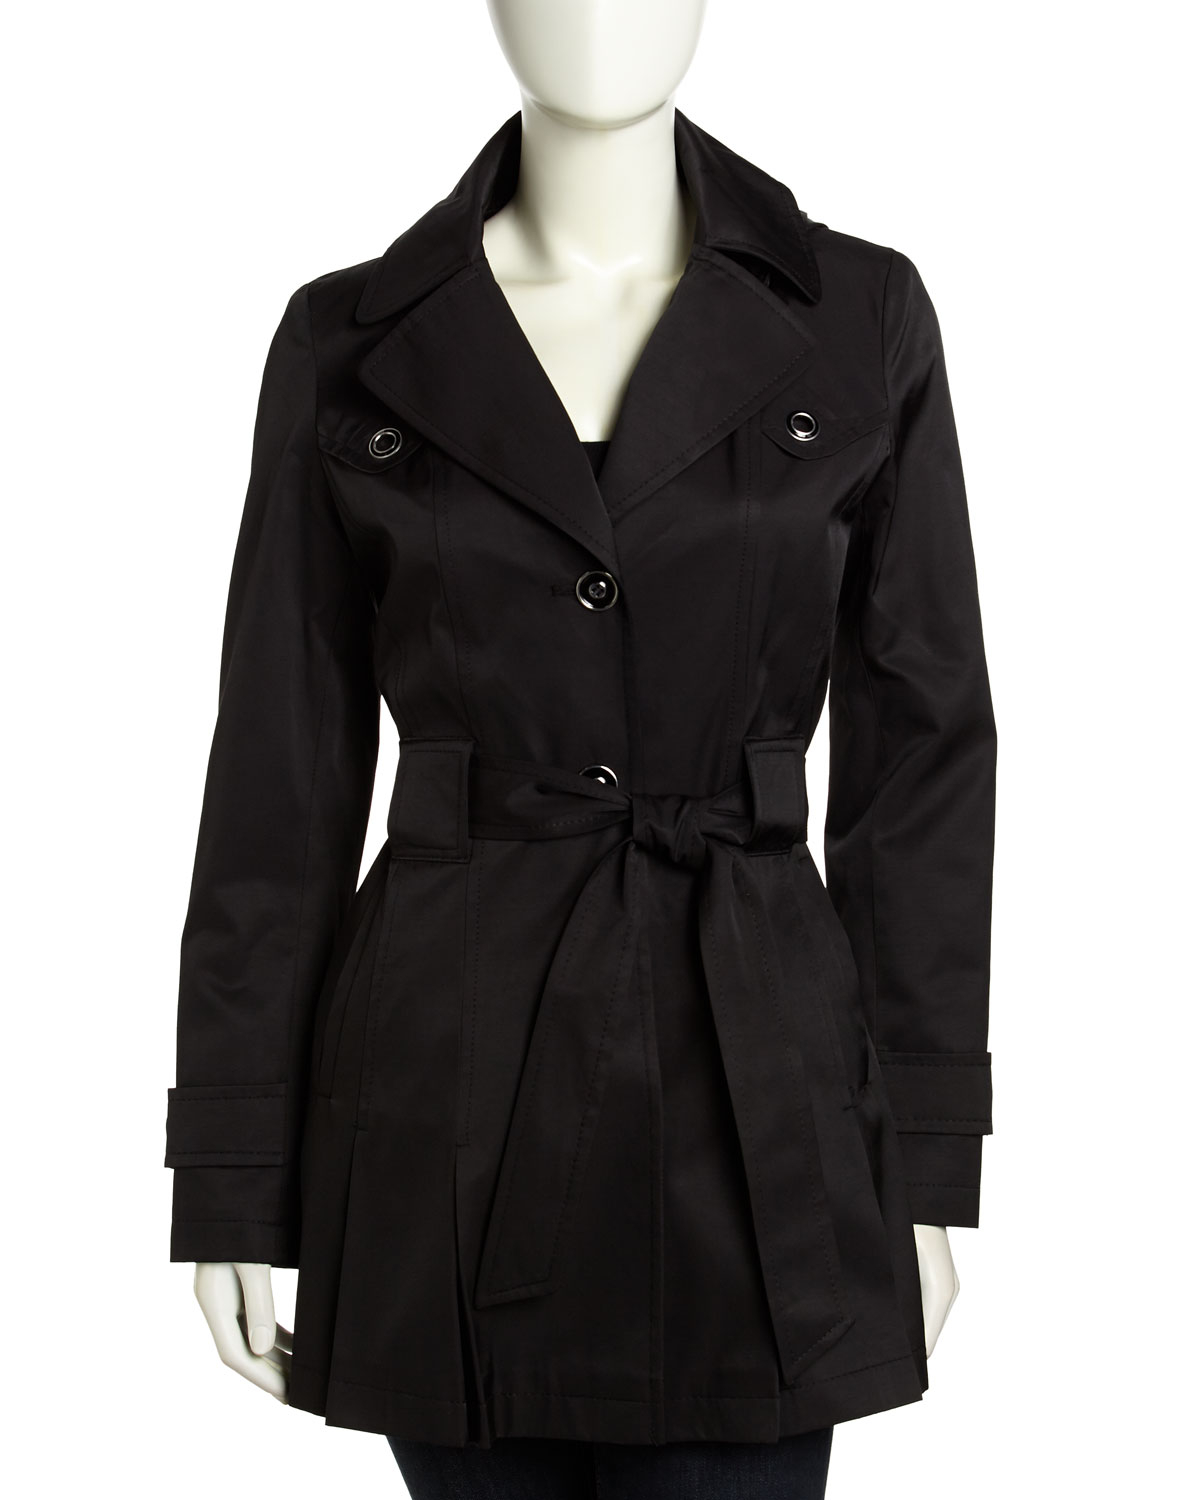 black trench coat with hood - photo #35